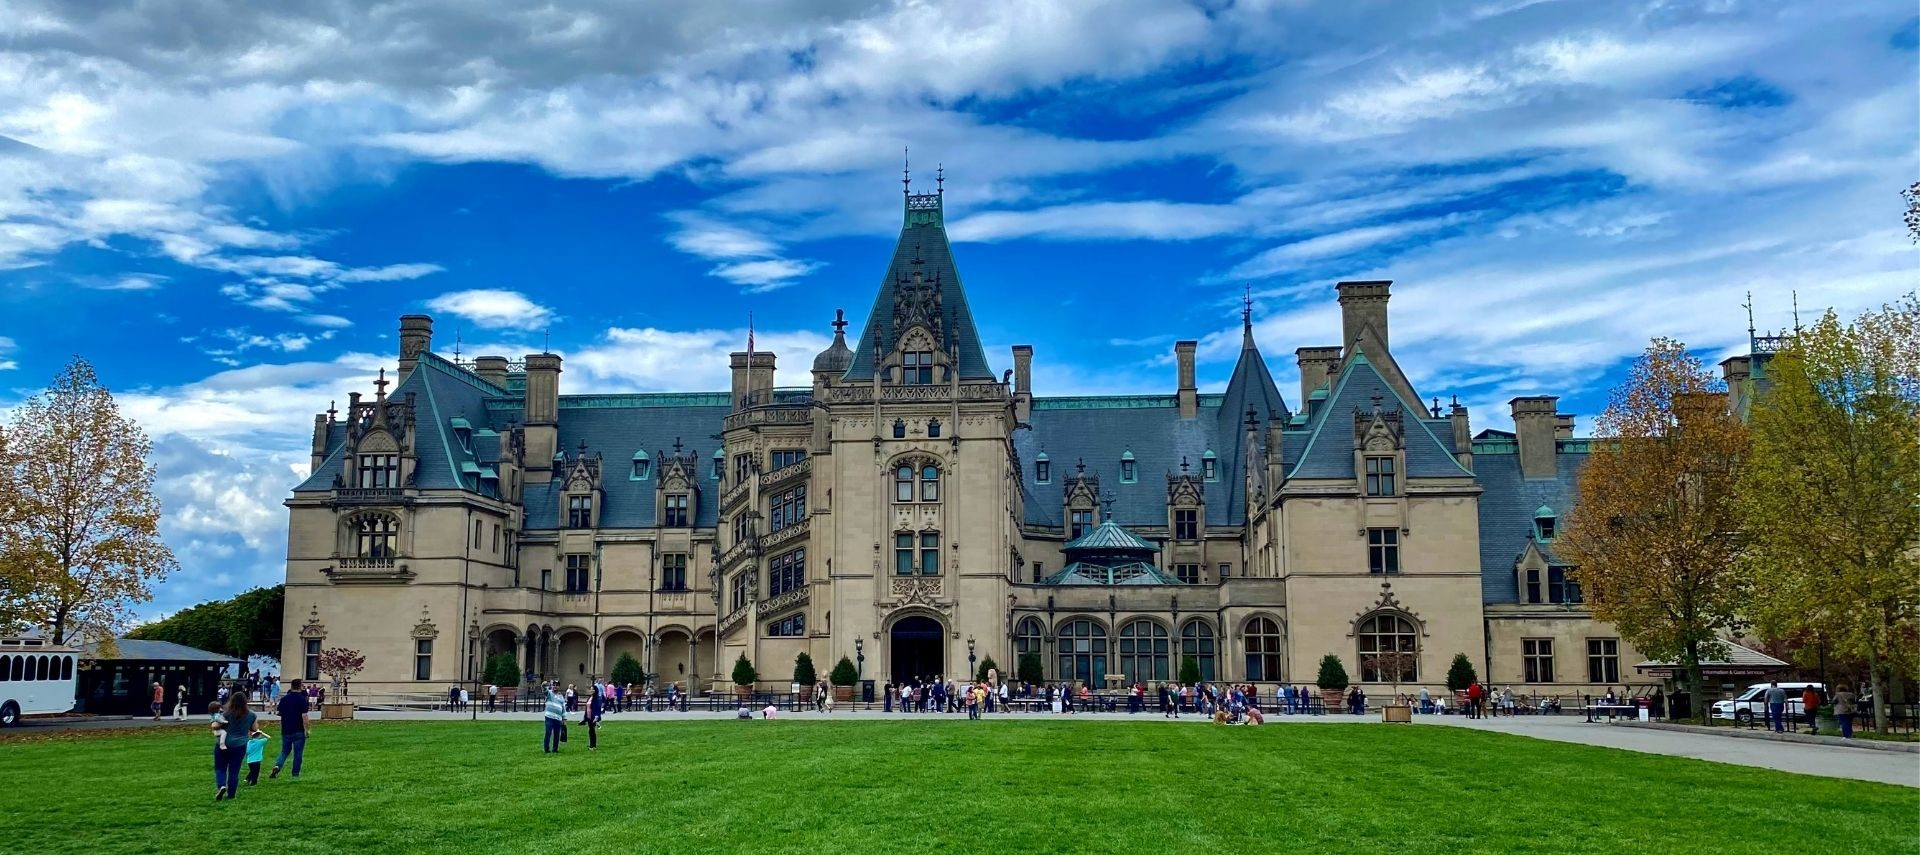 Exterior view of the stunning Biltmore Mansion in Asheville on a clear sunny day